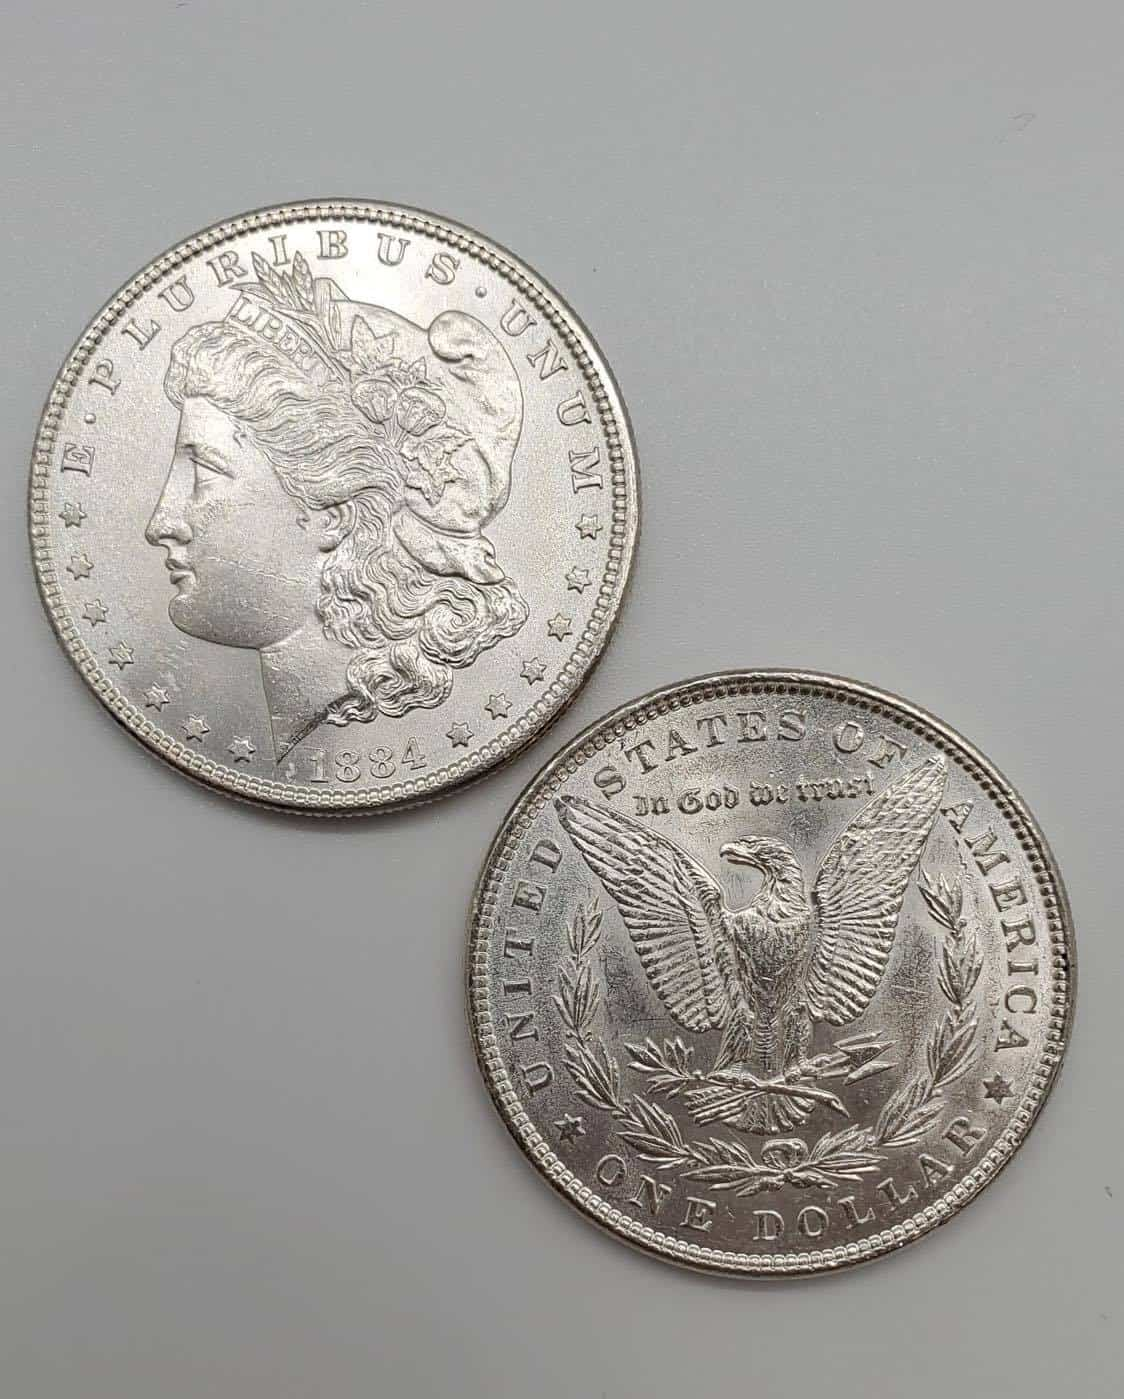 Features of the 1884 Morgan Silver Dollar